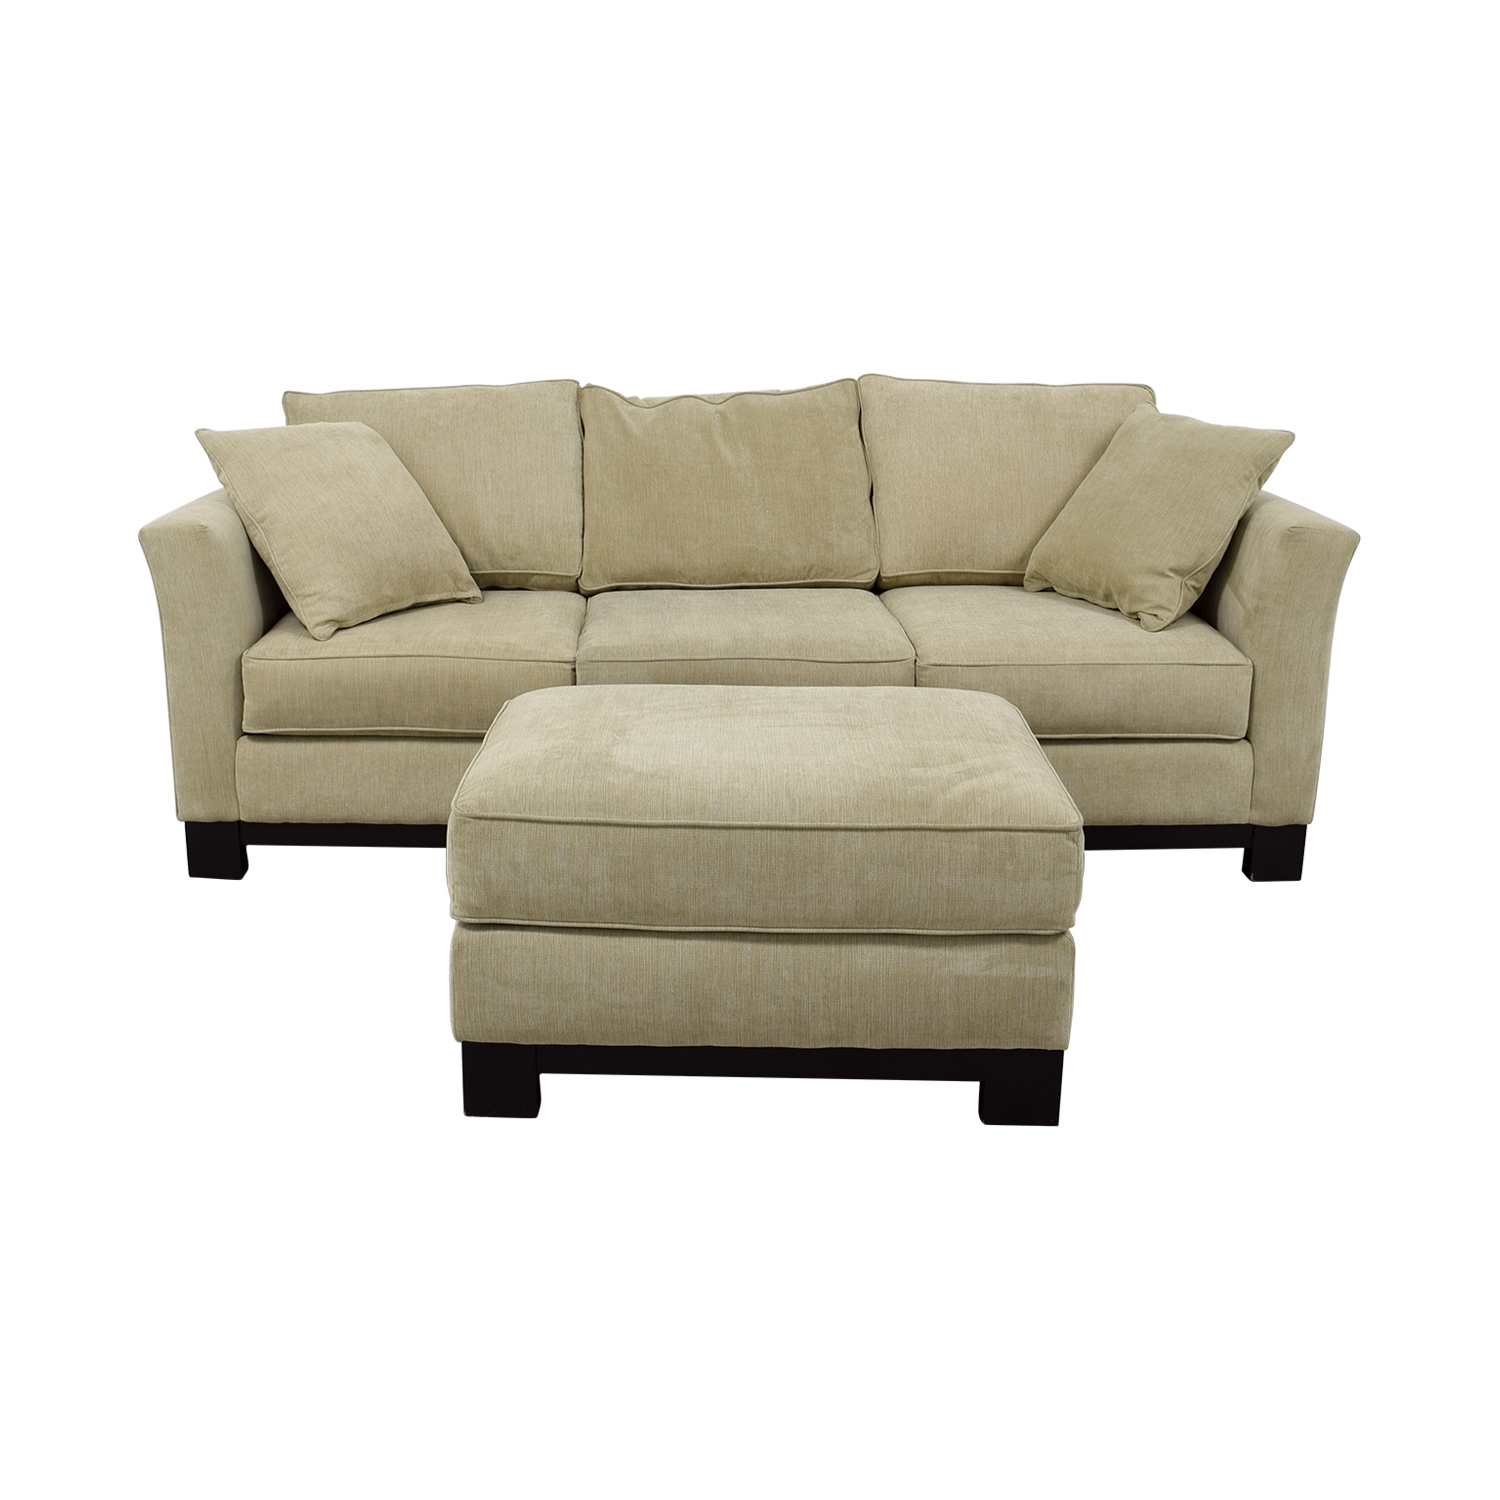 [%60% Off – Macy's Macy's Grey Fabric Couch And Large Ottoman / Sofas With Most Current Sofas With Large Ottoman|Sofas With Large Ottoman Intended For Current 60% Off – Macy's Macy's Grey Fabric Couch And Large Ottoman / Sofas|Well Known Sofas With Large Ottoman With 60% Off – Macy's Macy's Grey Fabric Couch And Large Ottoman / Sofas|Trendy 60% Off – Macy's Macy's Grey Fabric Couch And Large Ottoman / Sofas With Regard To Sofas With Large Ottoman%] (View 1 of 15)